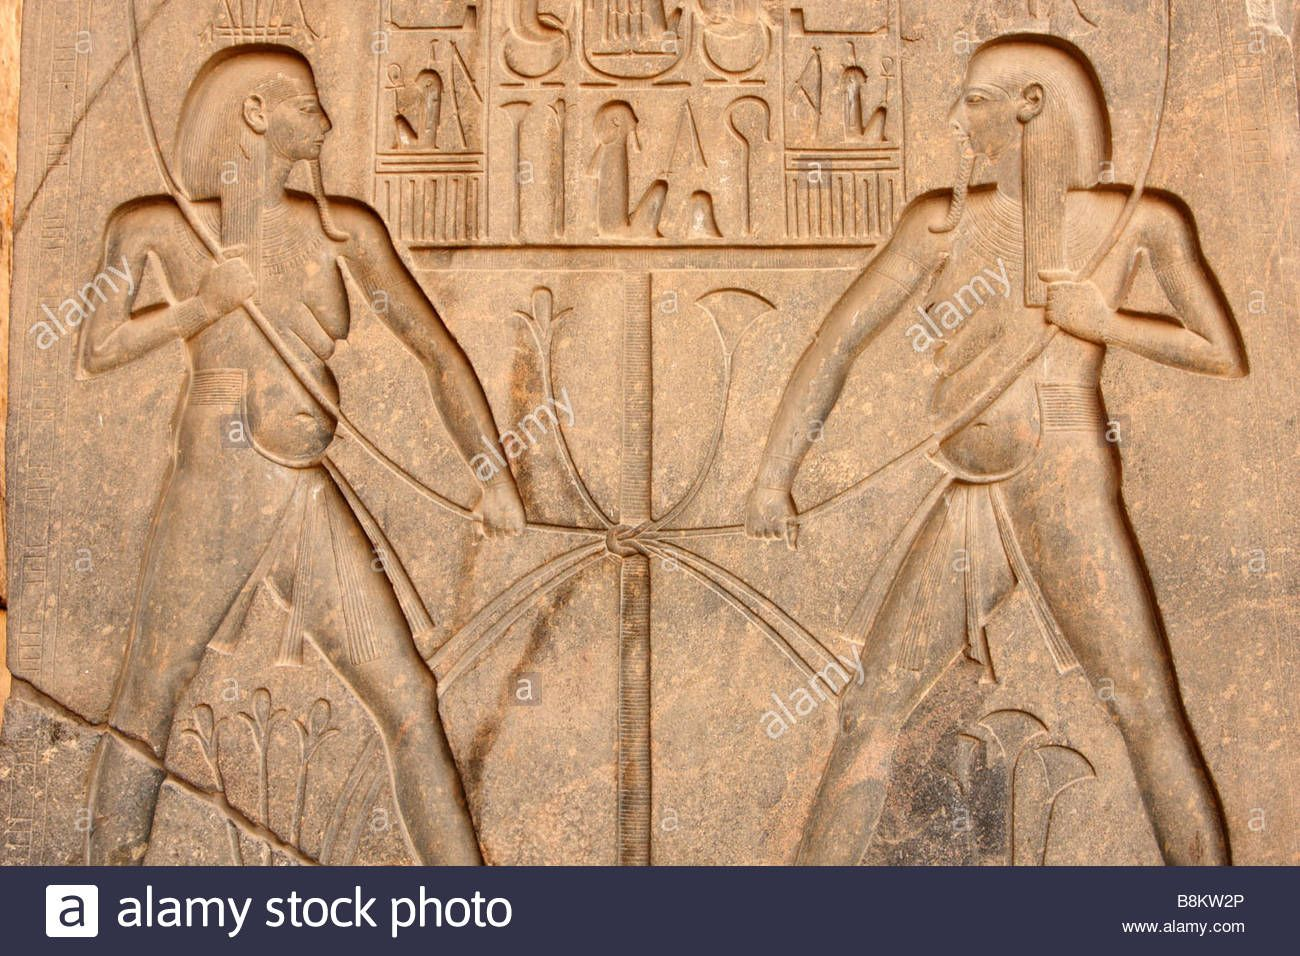 Two figures of god hapi representing upper and lower egypt tying two figures of god hapi representing upper and lower egypt tying lotus and papyrus around nile wall relief detail luxor temple izmirmasajfo